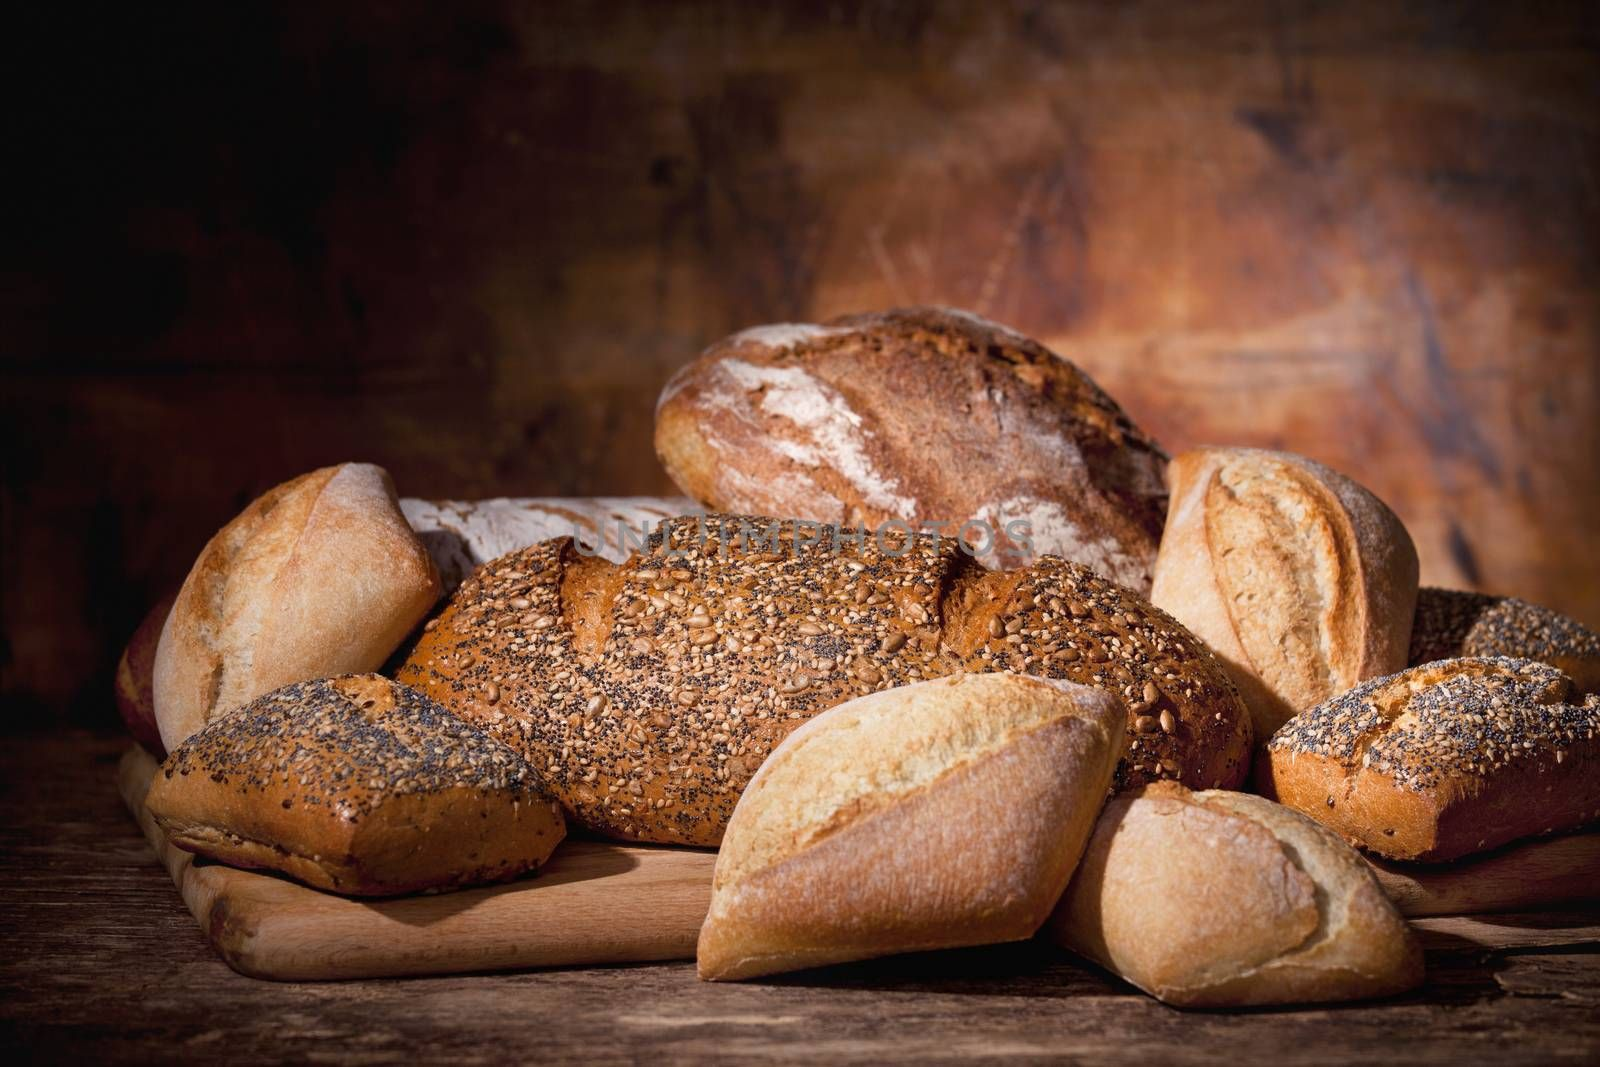 Assortment of a variety of breads straight out of the oven